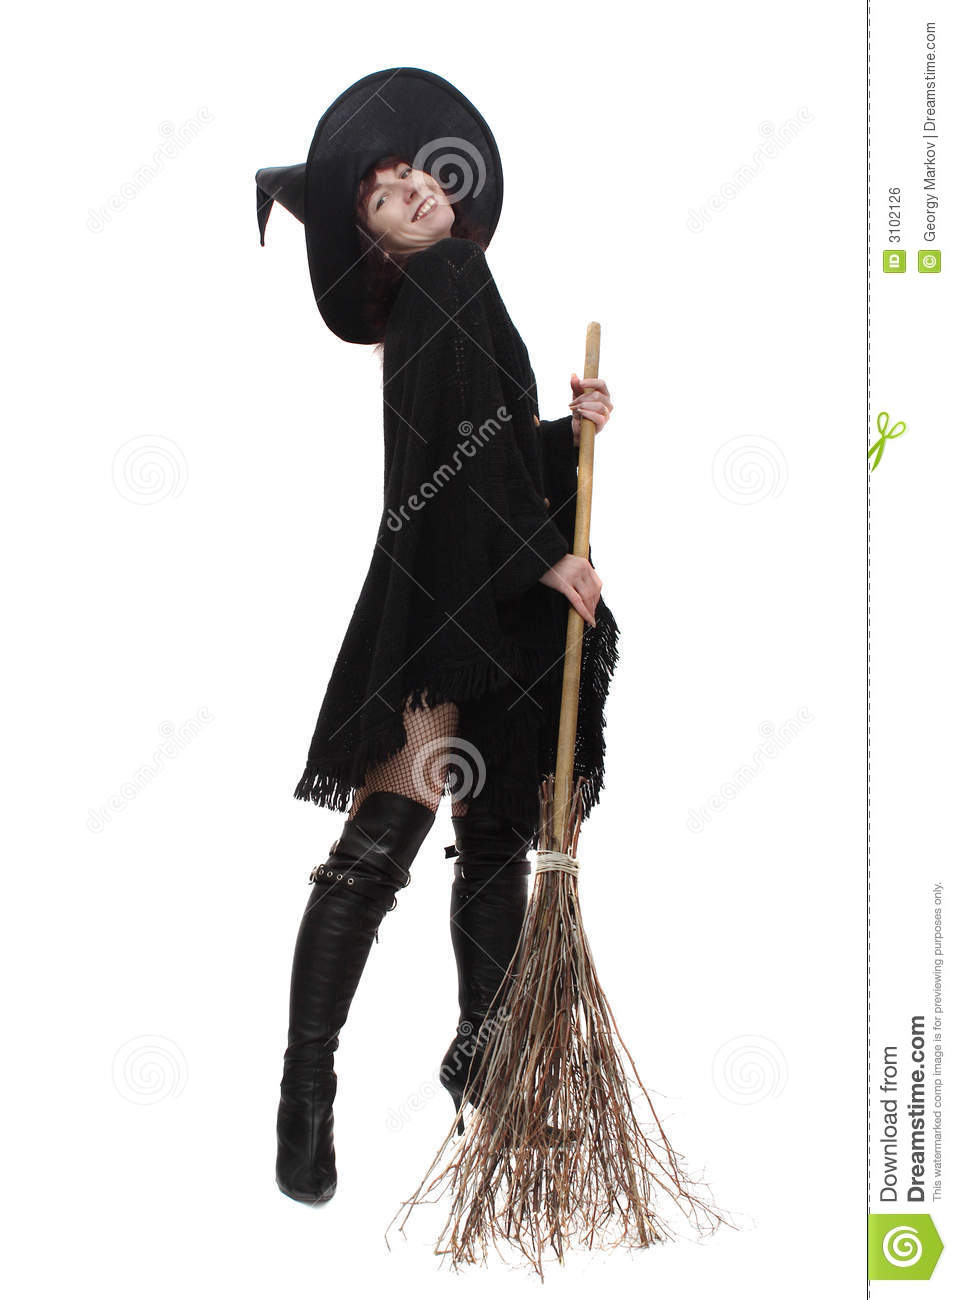 Witch With A Broom Royalty Free Stock Image - Image: 3102126